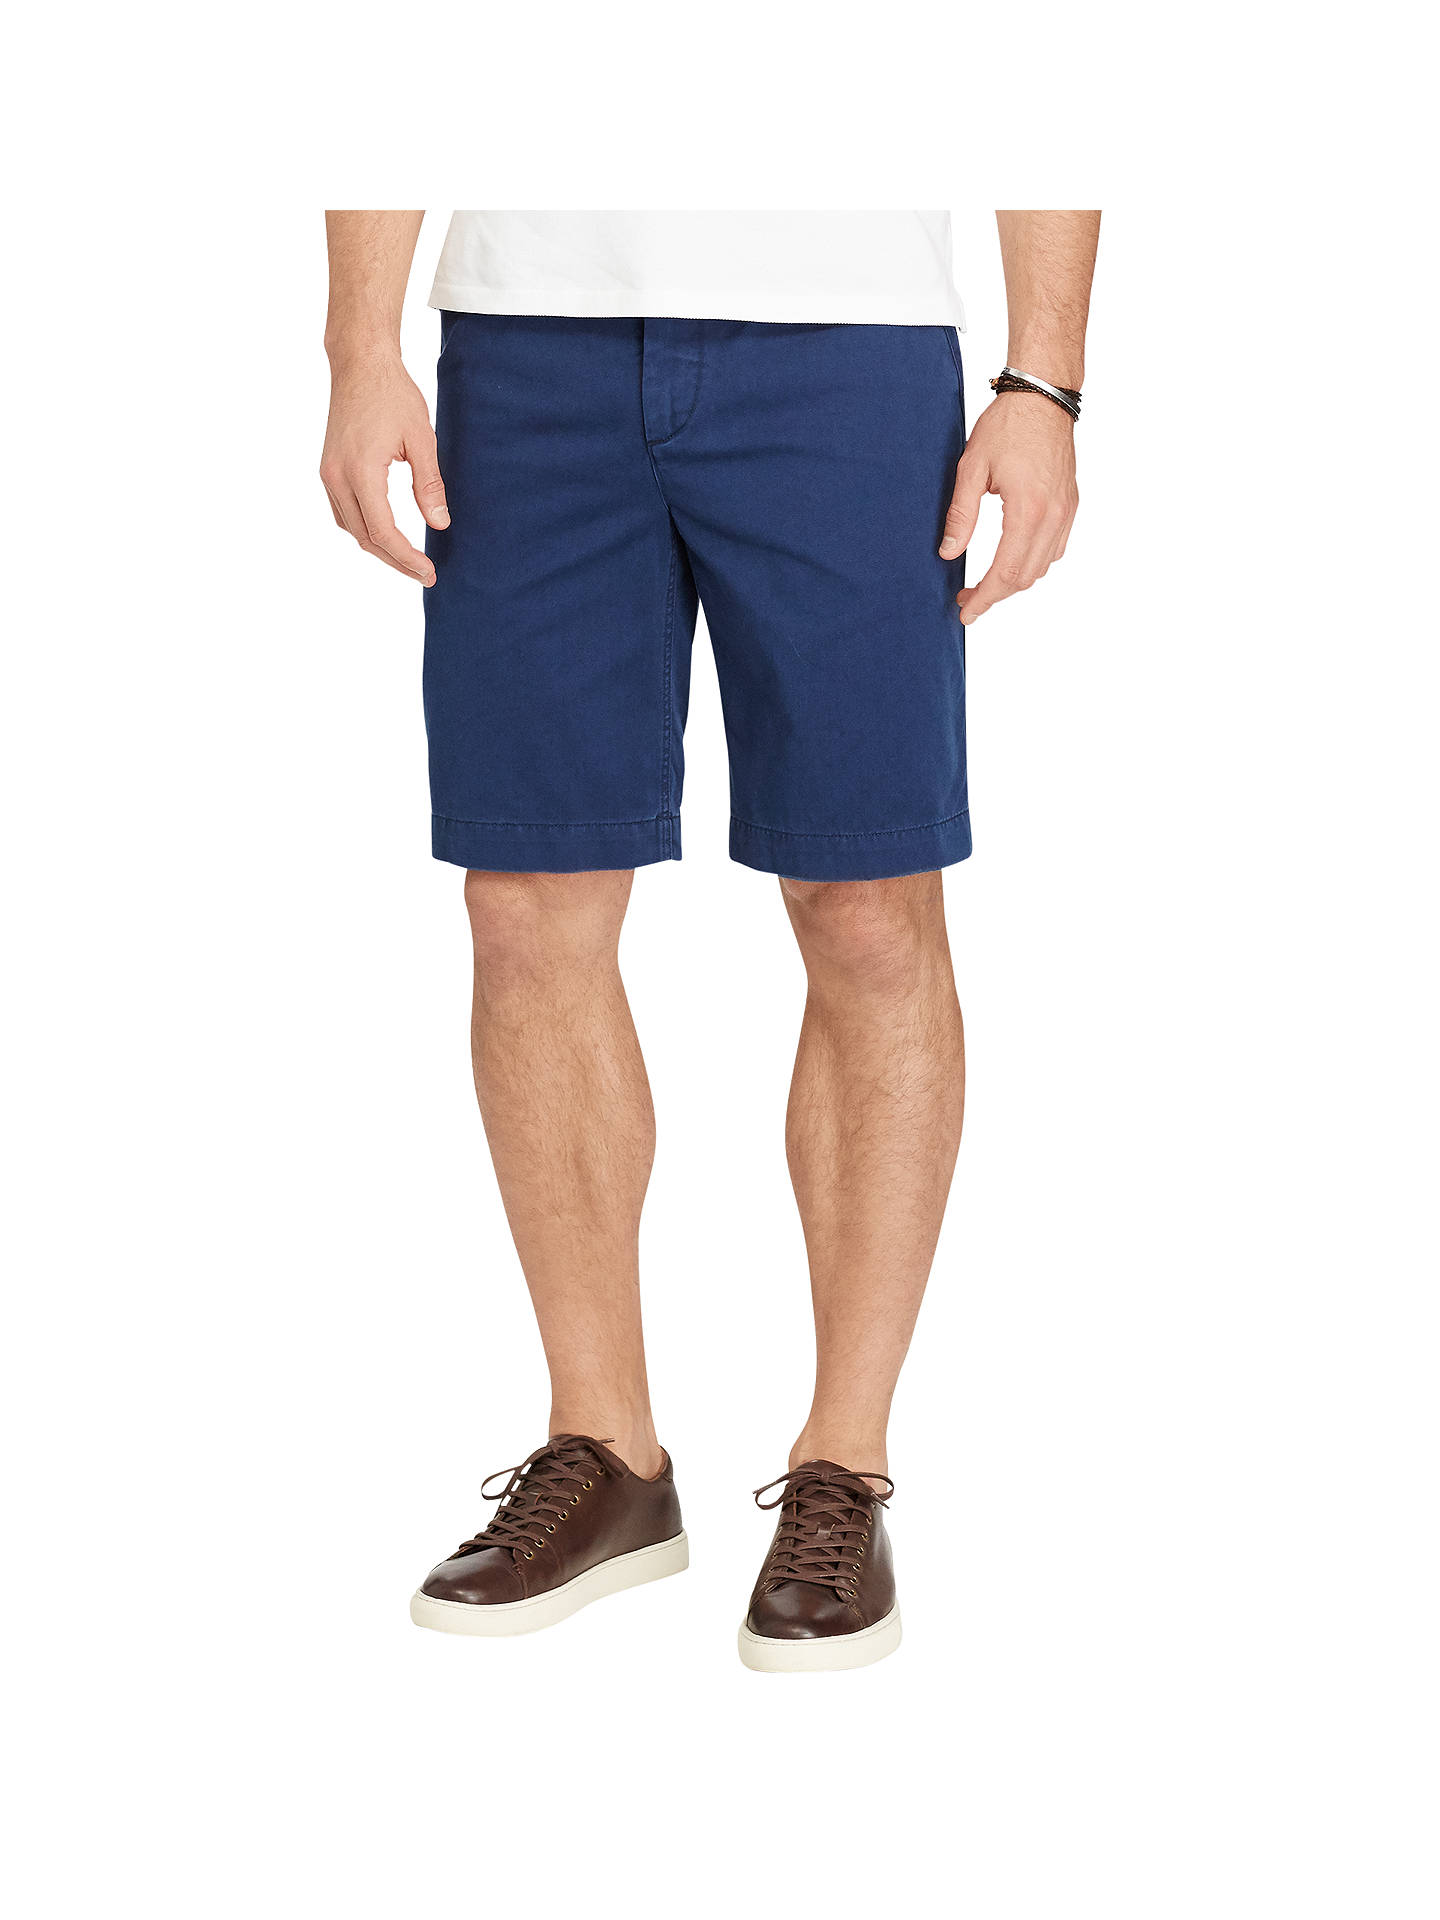 c30762349 Polo Ralph Lauren Relaxed Fit Cotton Chino Shorts at John Lewis ...